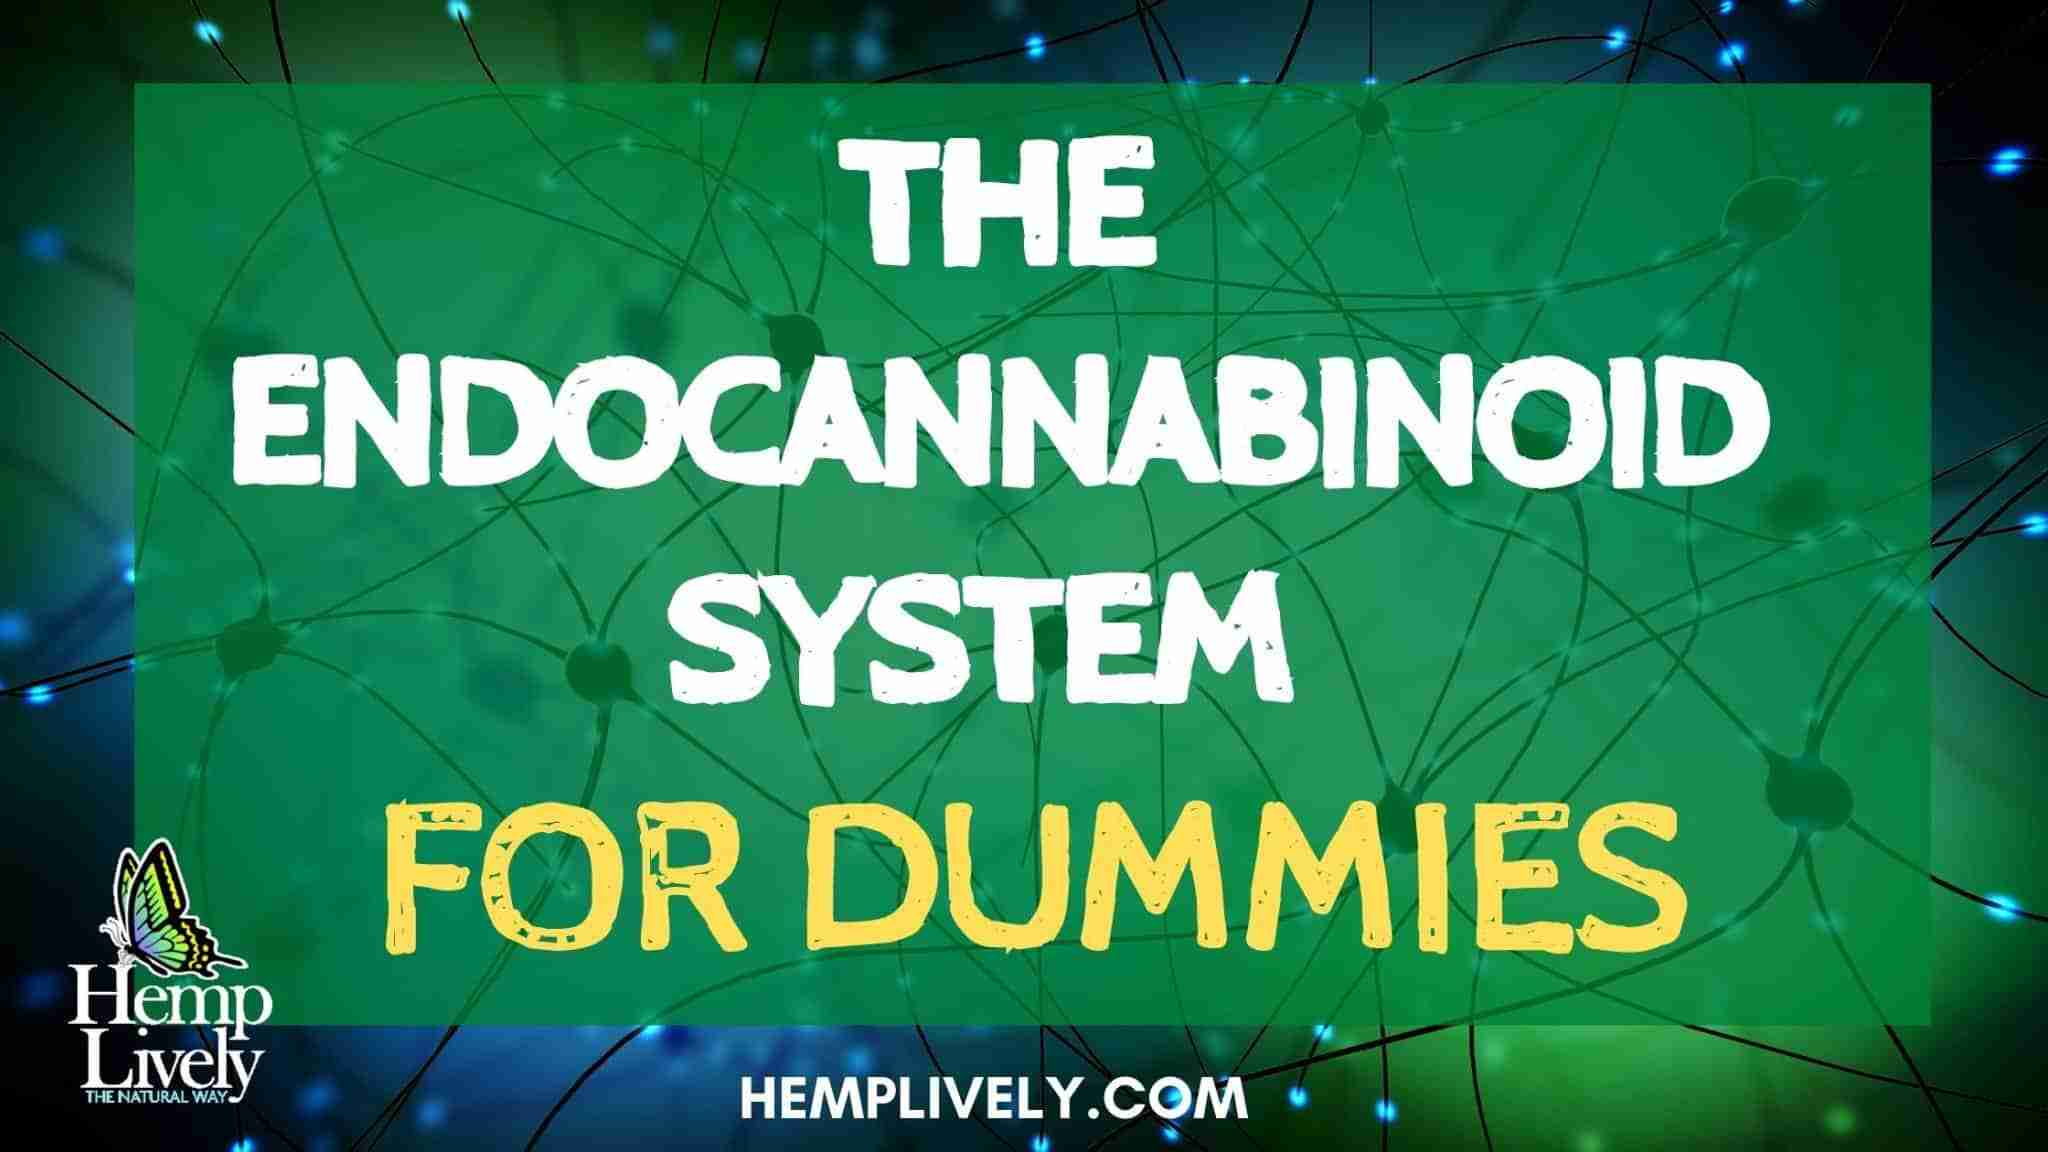 The Endocannabinoid System for Dummies